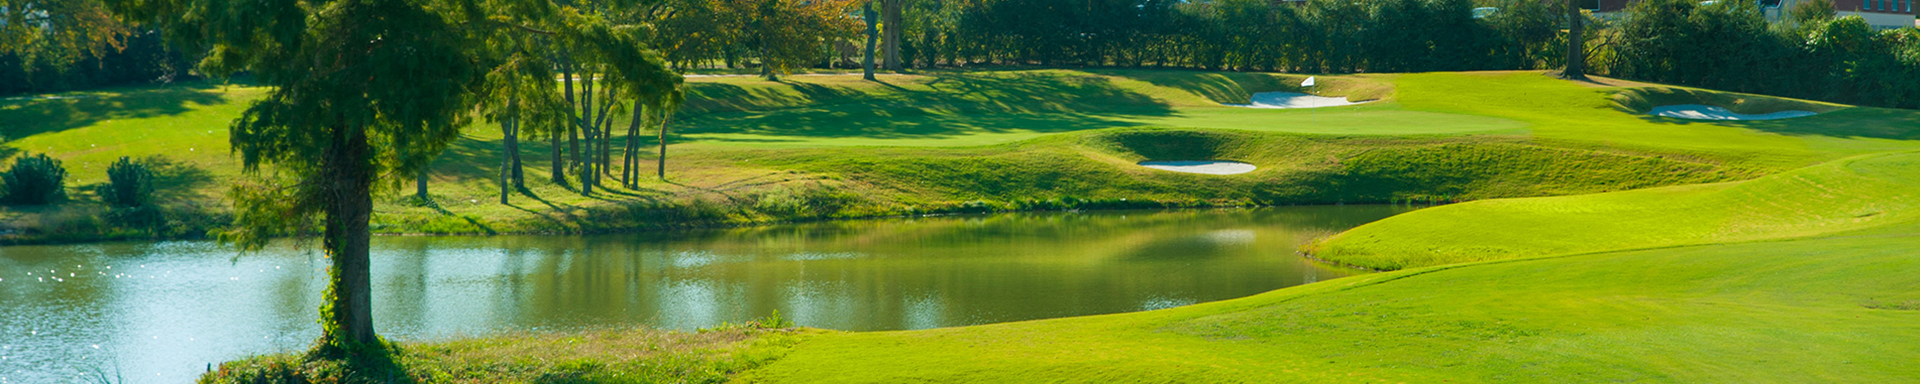 Watters Creek Senior Golf Association - The Courses at Watters Creek